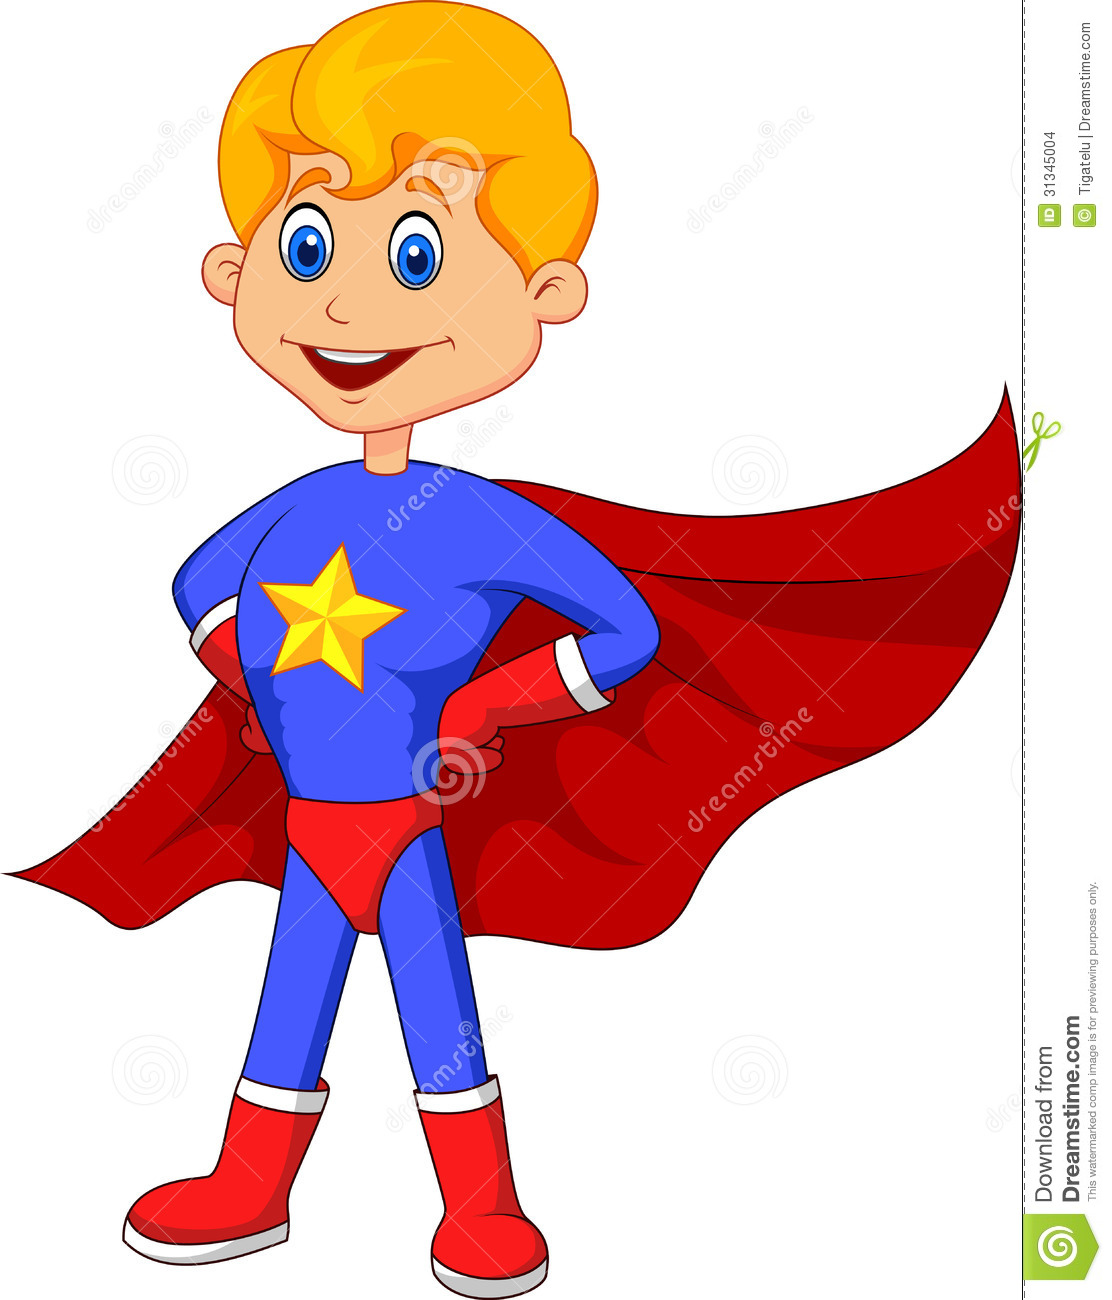 Free Animated Superhero Clipart Clipground